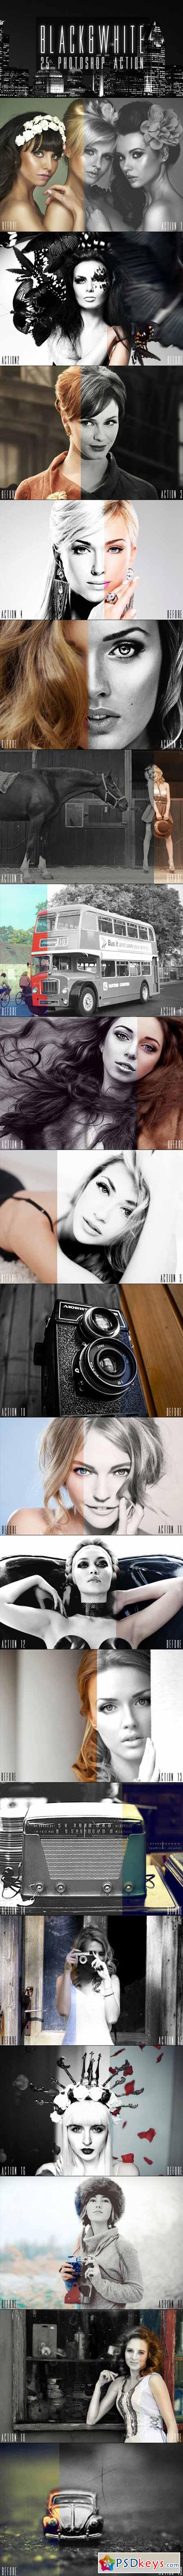 25 Black & White Photoshop Actions 11527320